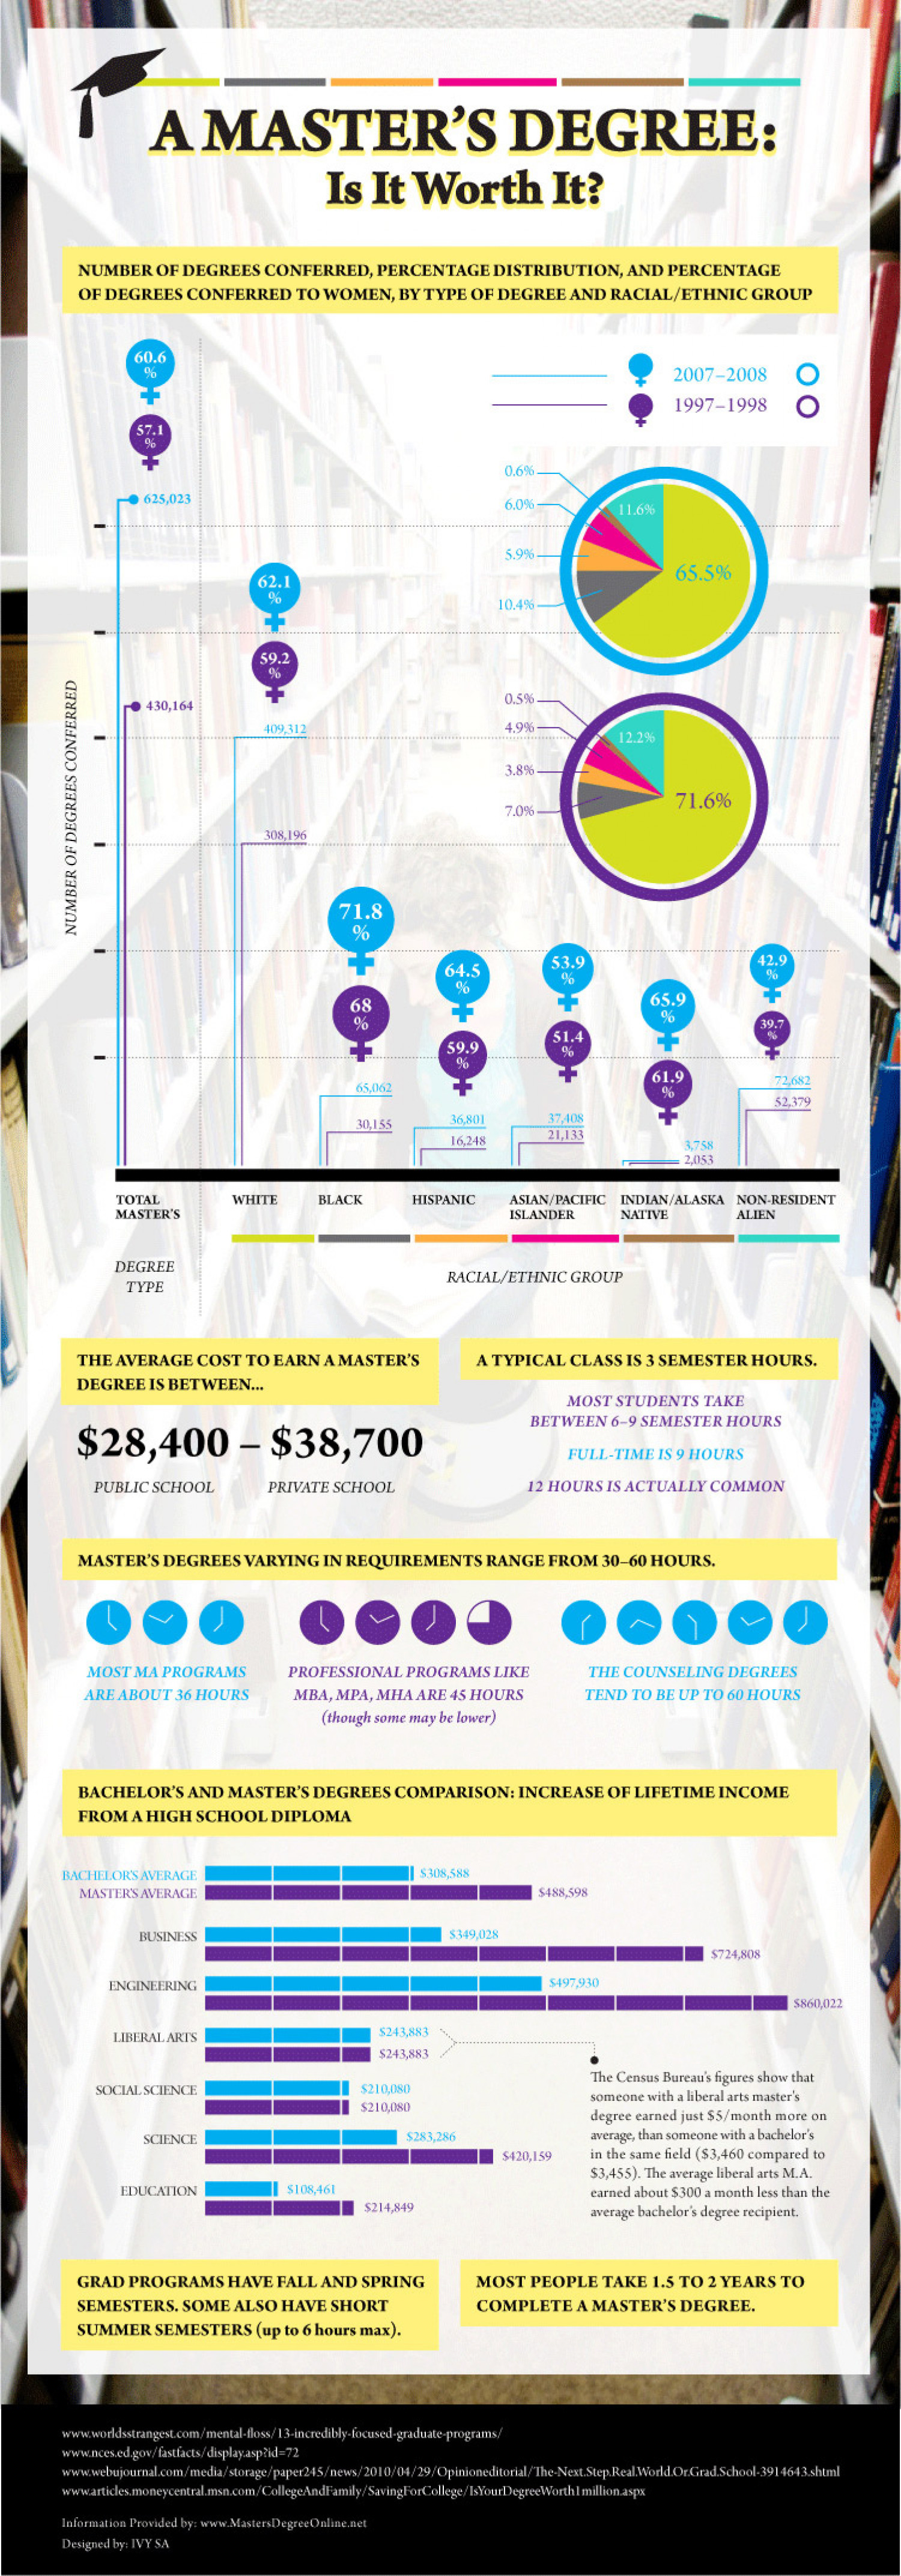 A Master's Degree: Is It Worth It? Infographic